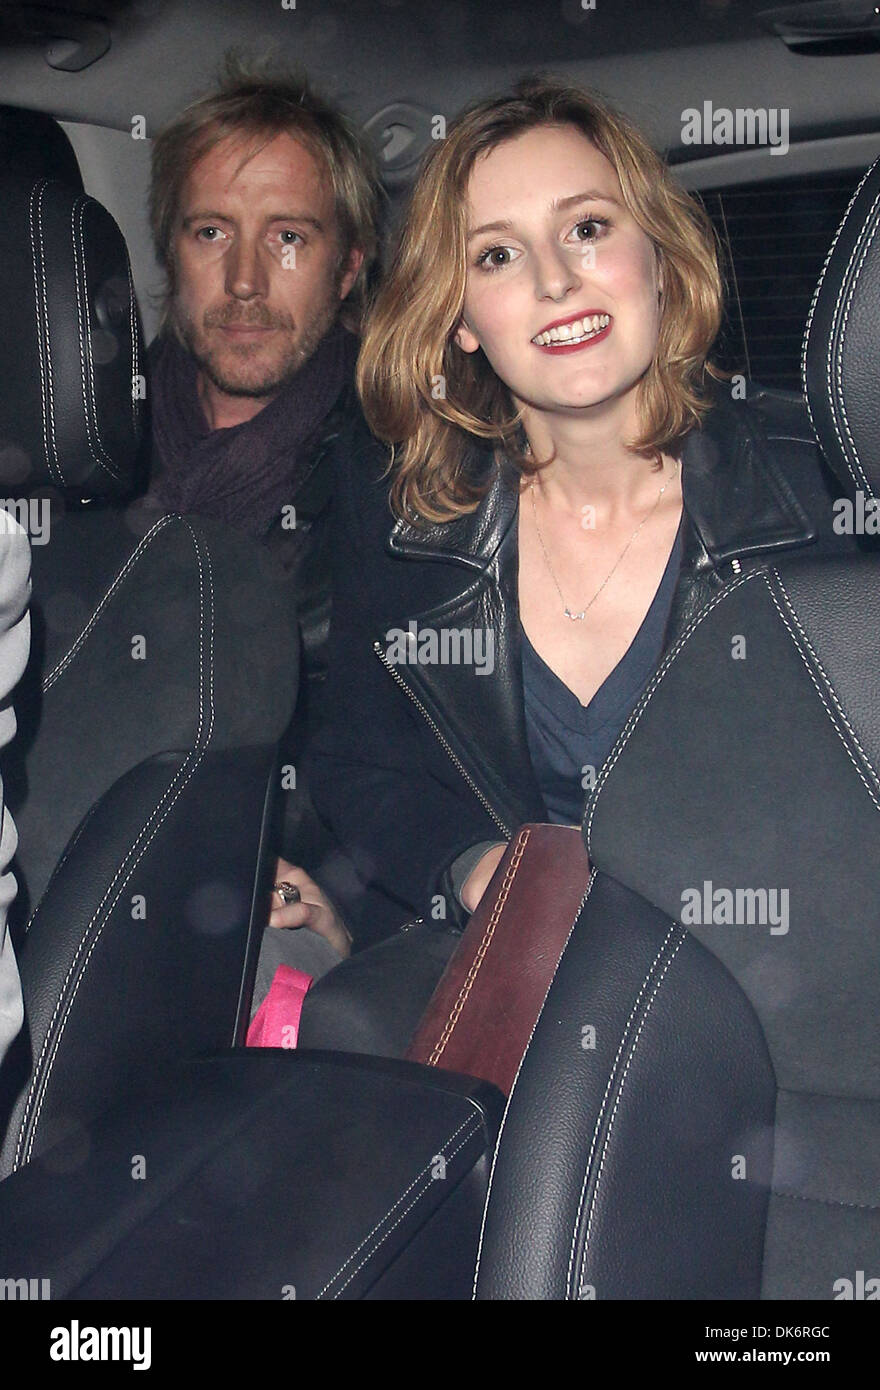 Rhys Ifans and Laura Carmichael at Sketch nightclub London, England - 26.09.12 - Stock Image